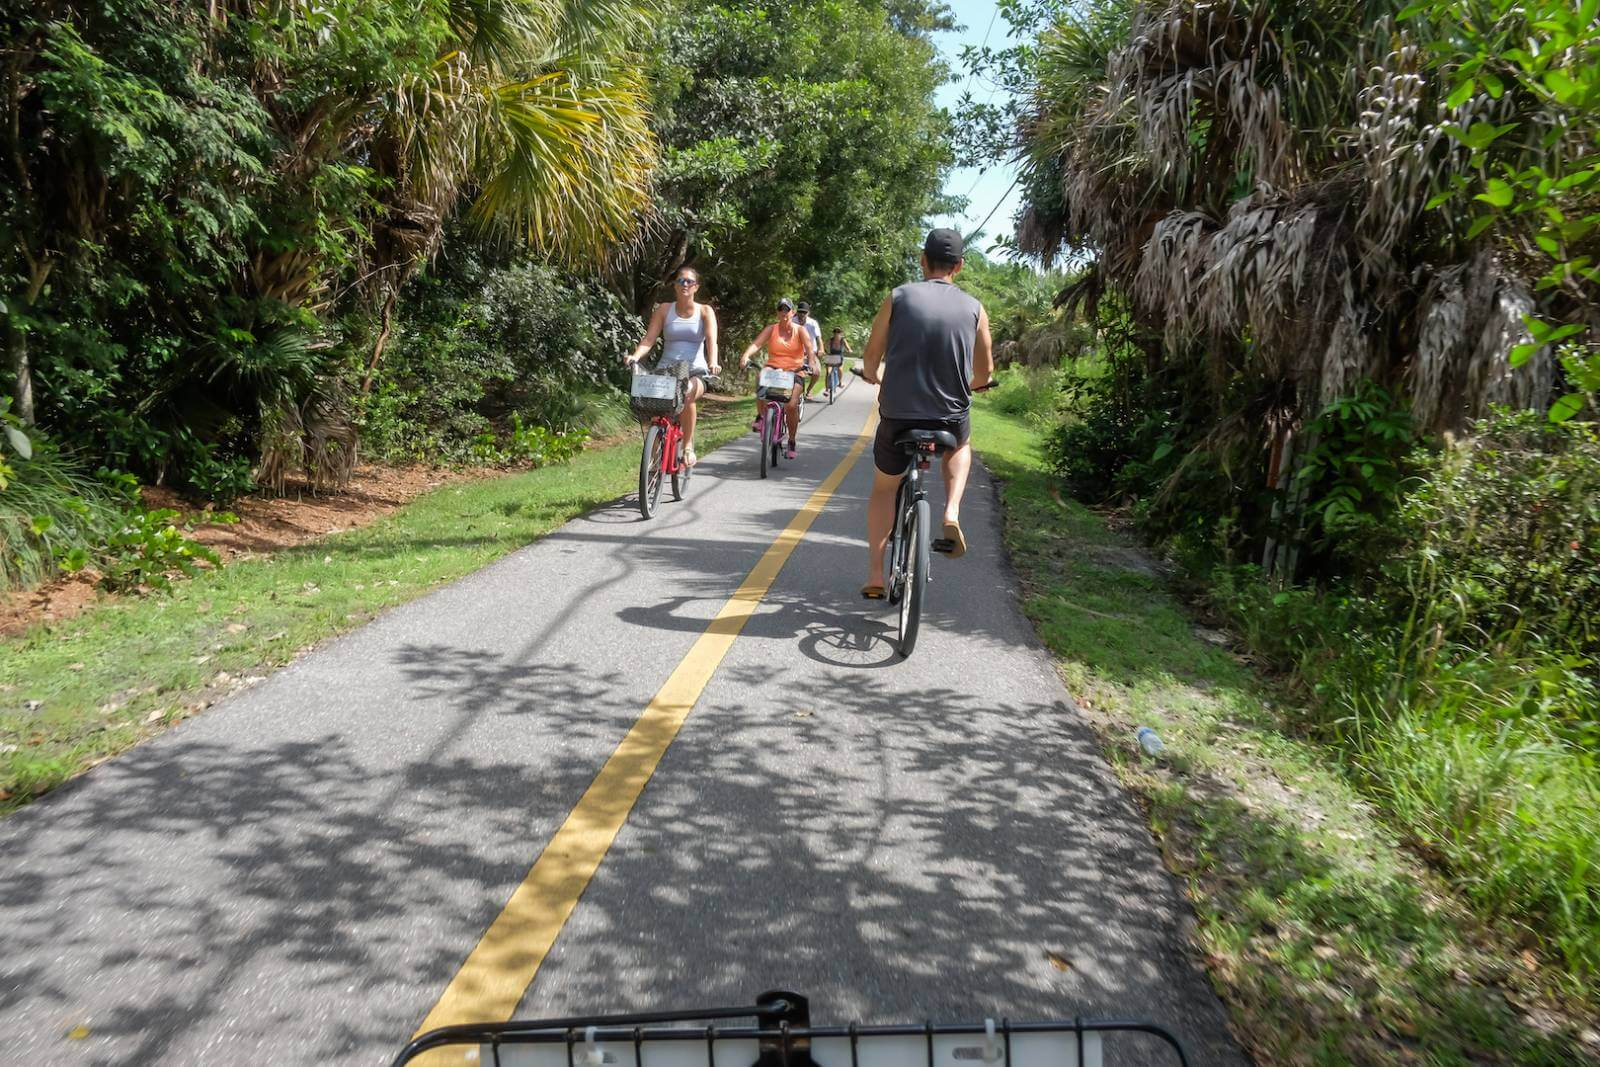 The best way to get around Sanibel and Captiva, Florida is by bicycle. The islands have 22 miles of shady traffic-free bike trails – and no stop lights! Photo by Mary Carol Fitzgerald. #Florida #vacationideas #biketrails #Sanibel #activities #familyfun